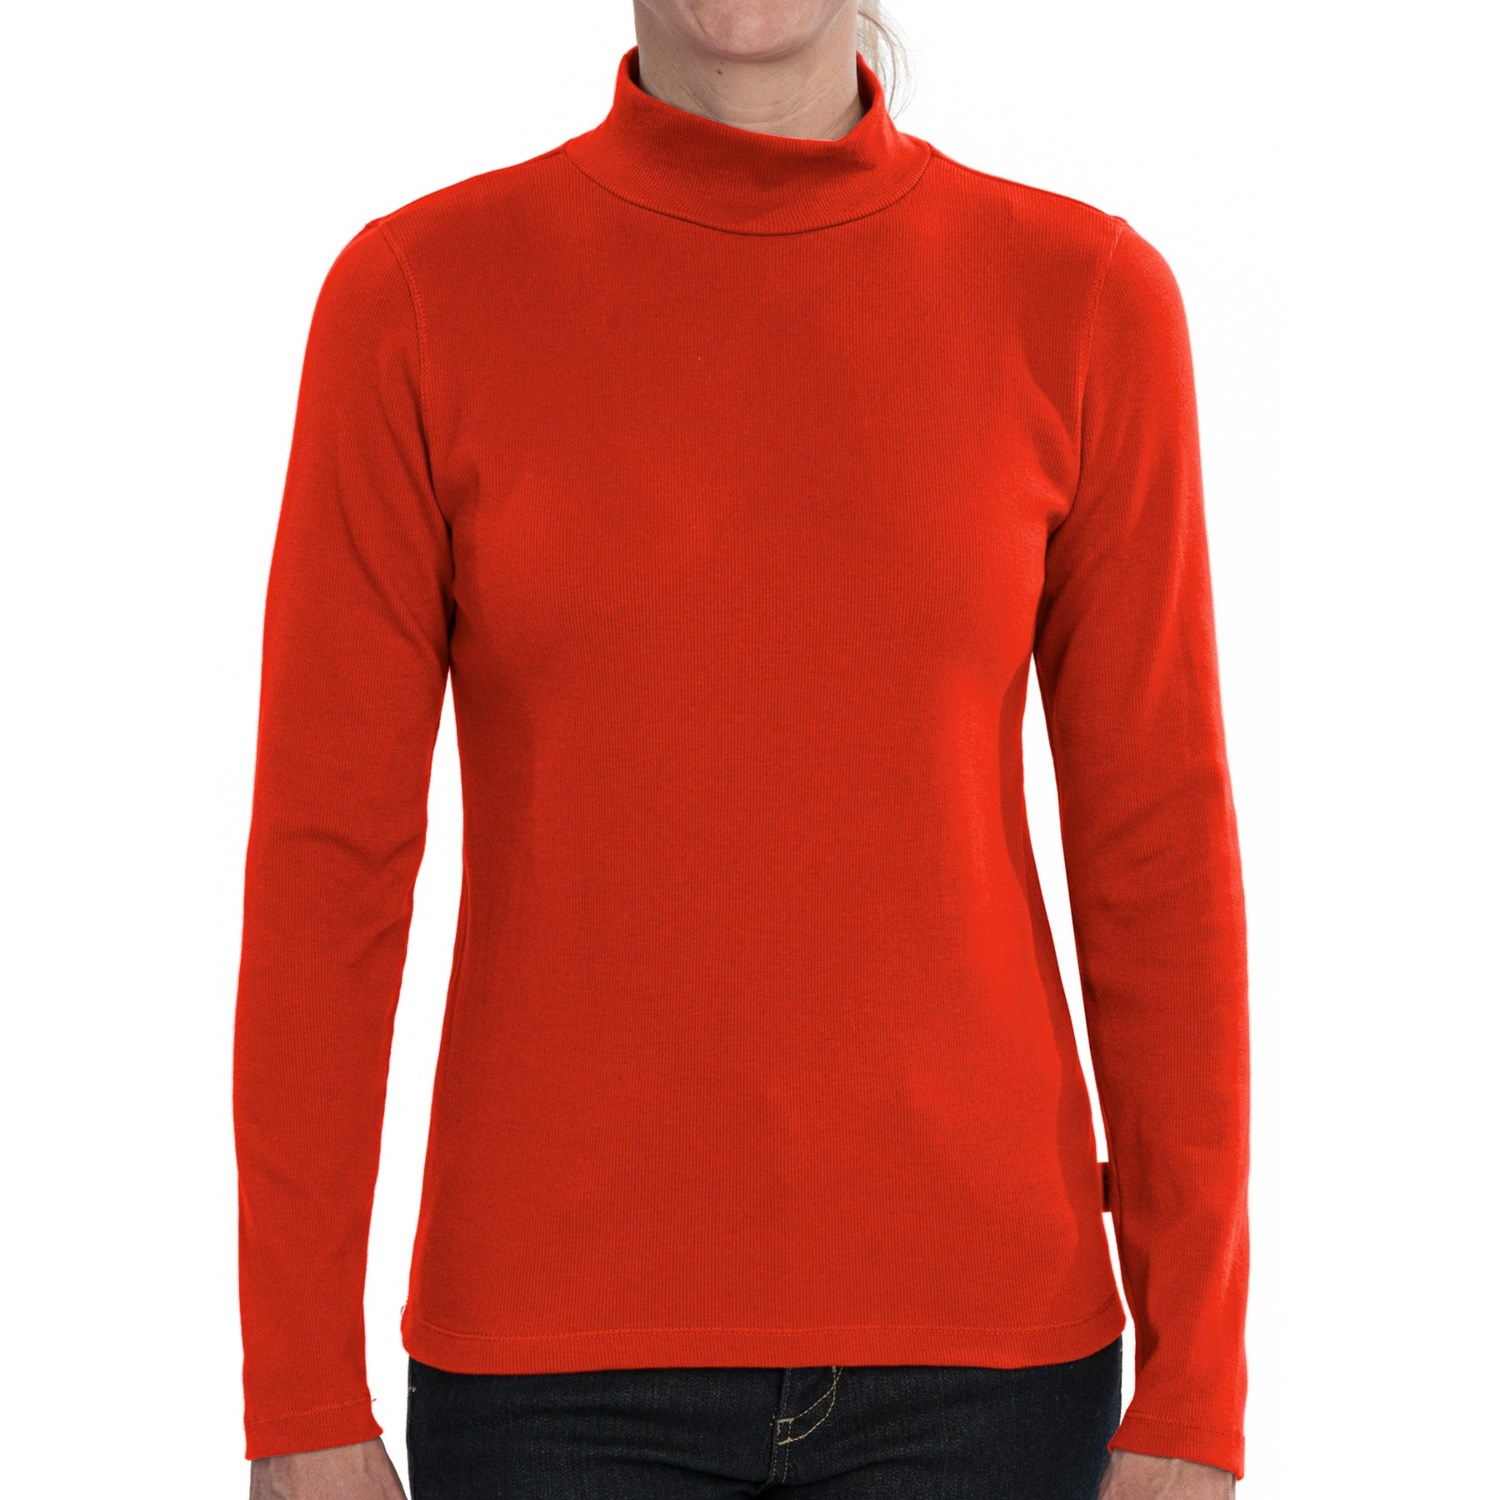 Stretch cotton mock neck shirt for women 7515g save 69 for Ladies mock turtleneck shirts